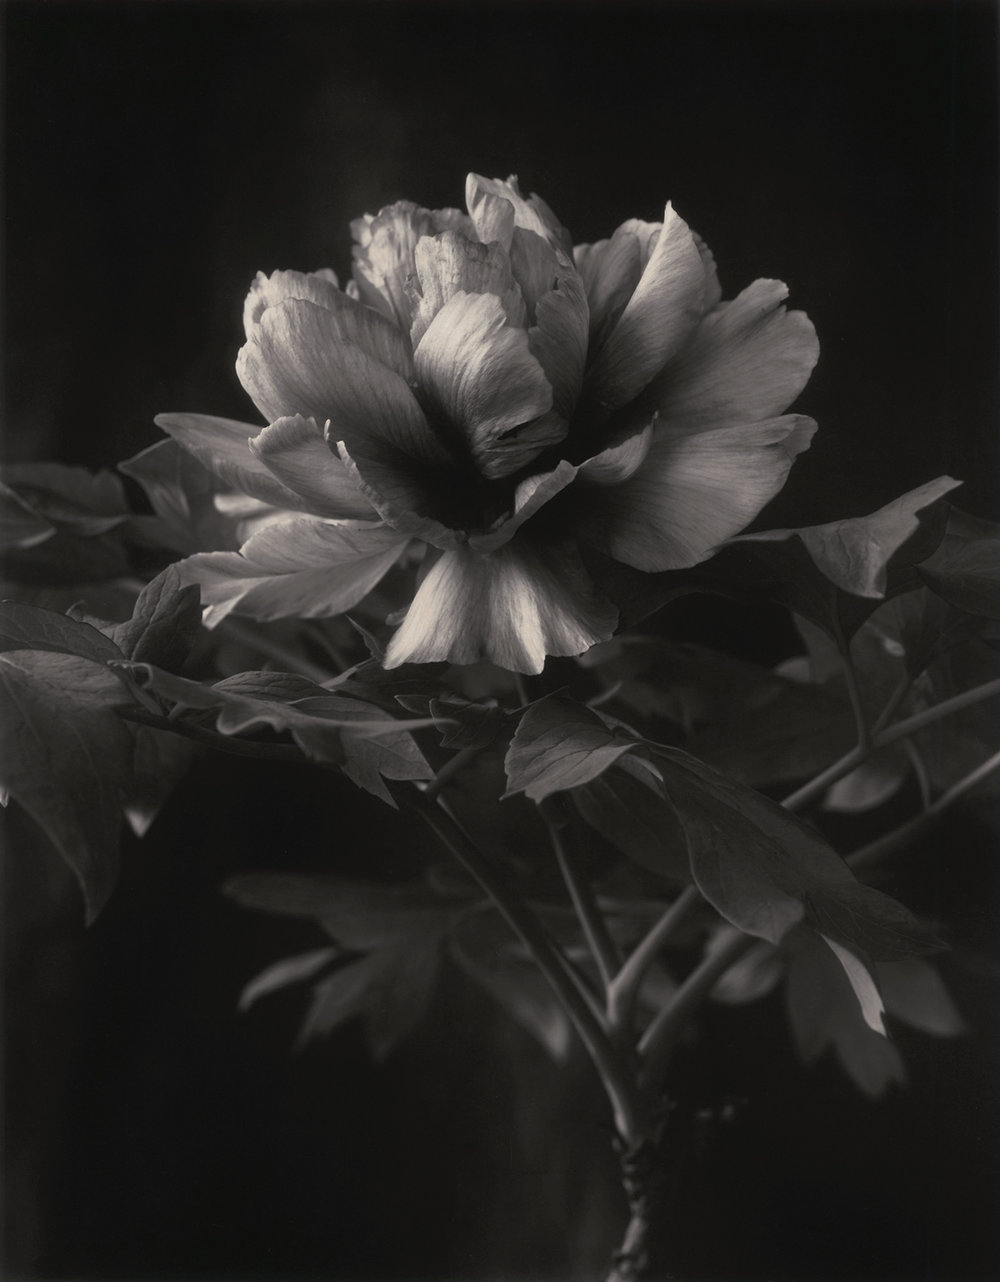 Leda   Nassos Daphnis hybrid tree peony, photographed in my studio in Berkeley, California.  The California permitted me to grow my tree peonies in pots and in turn to bring them into the studio as growing plants.